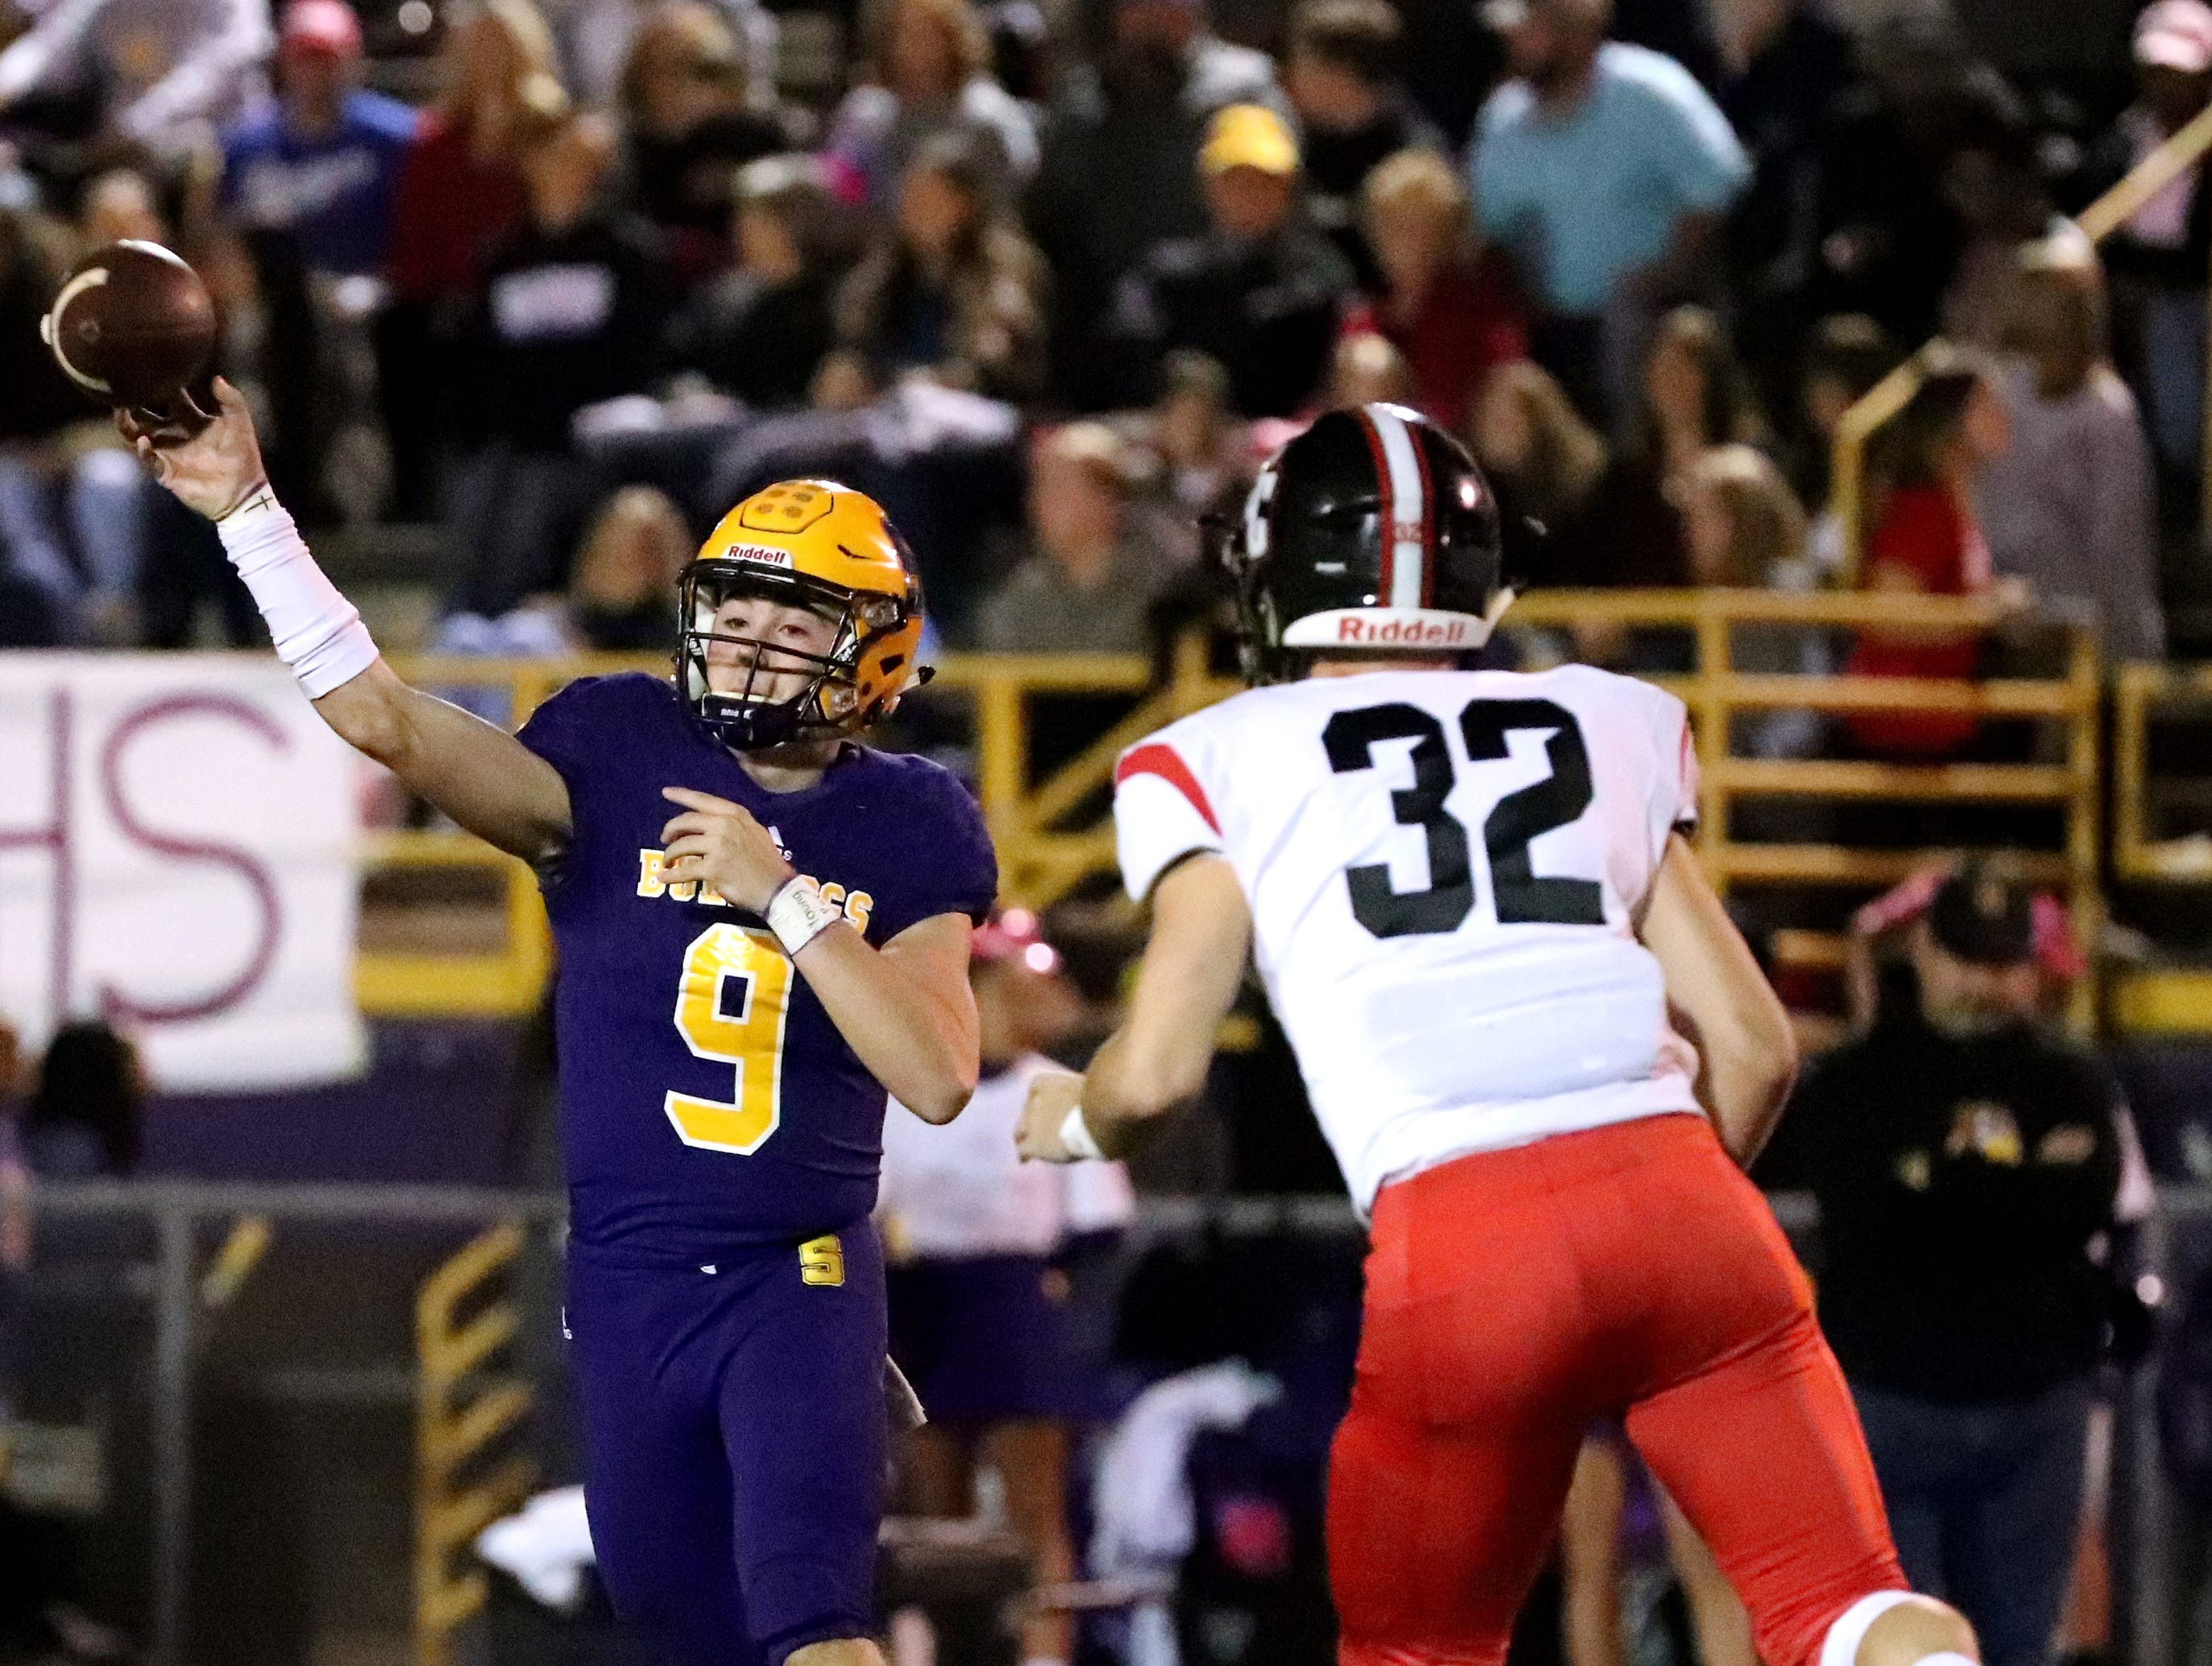 Smyrna's quarterback Alex Bannister (9) passes the ball as Stewarts Creek's Aaron Snowden (32) puts on the pressure  at Smyrna High School on Friday, Oct. 12, 2018.